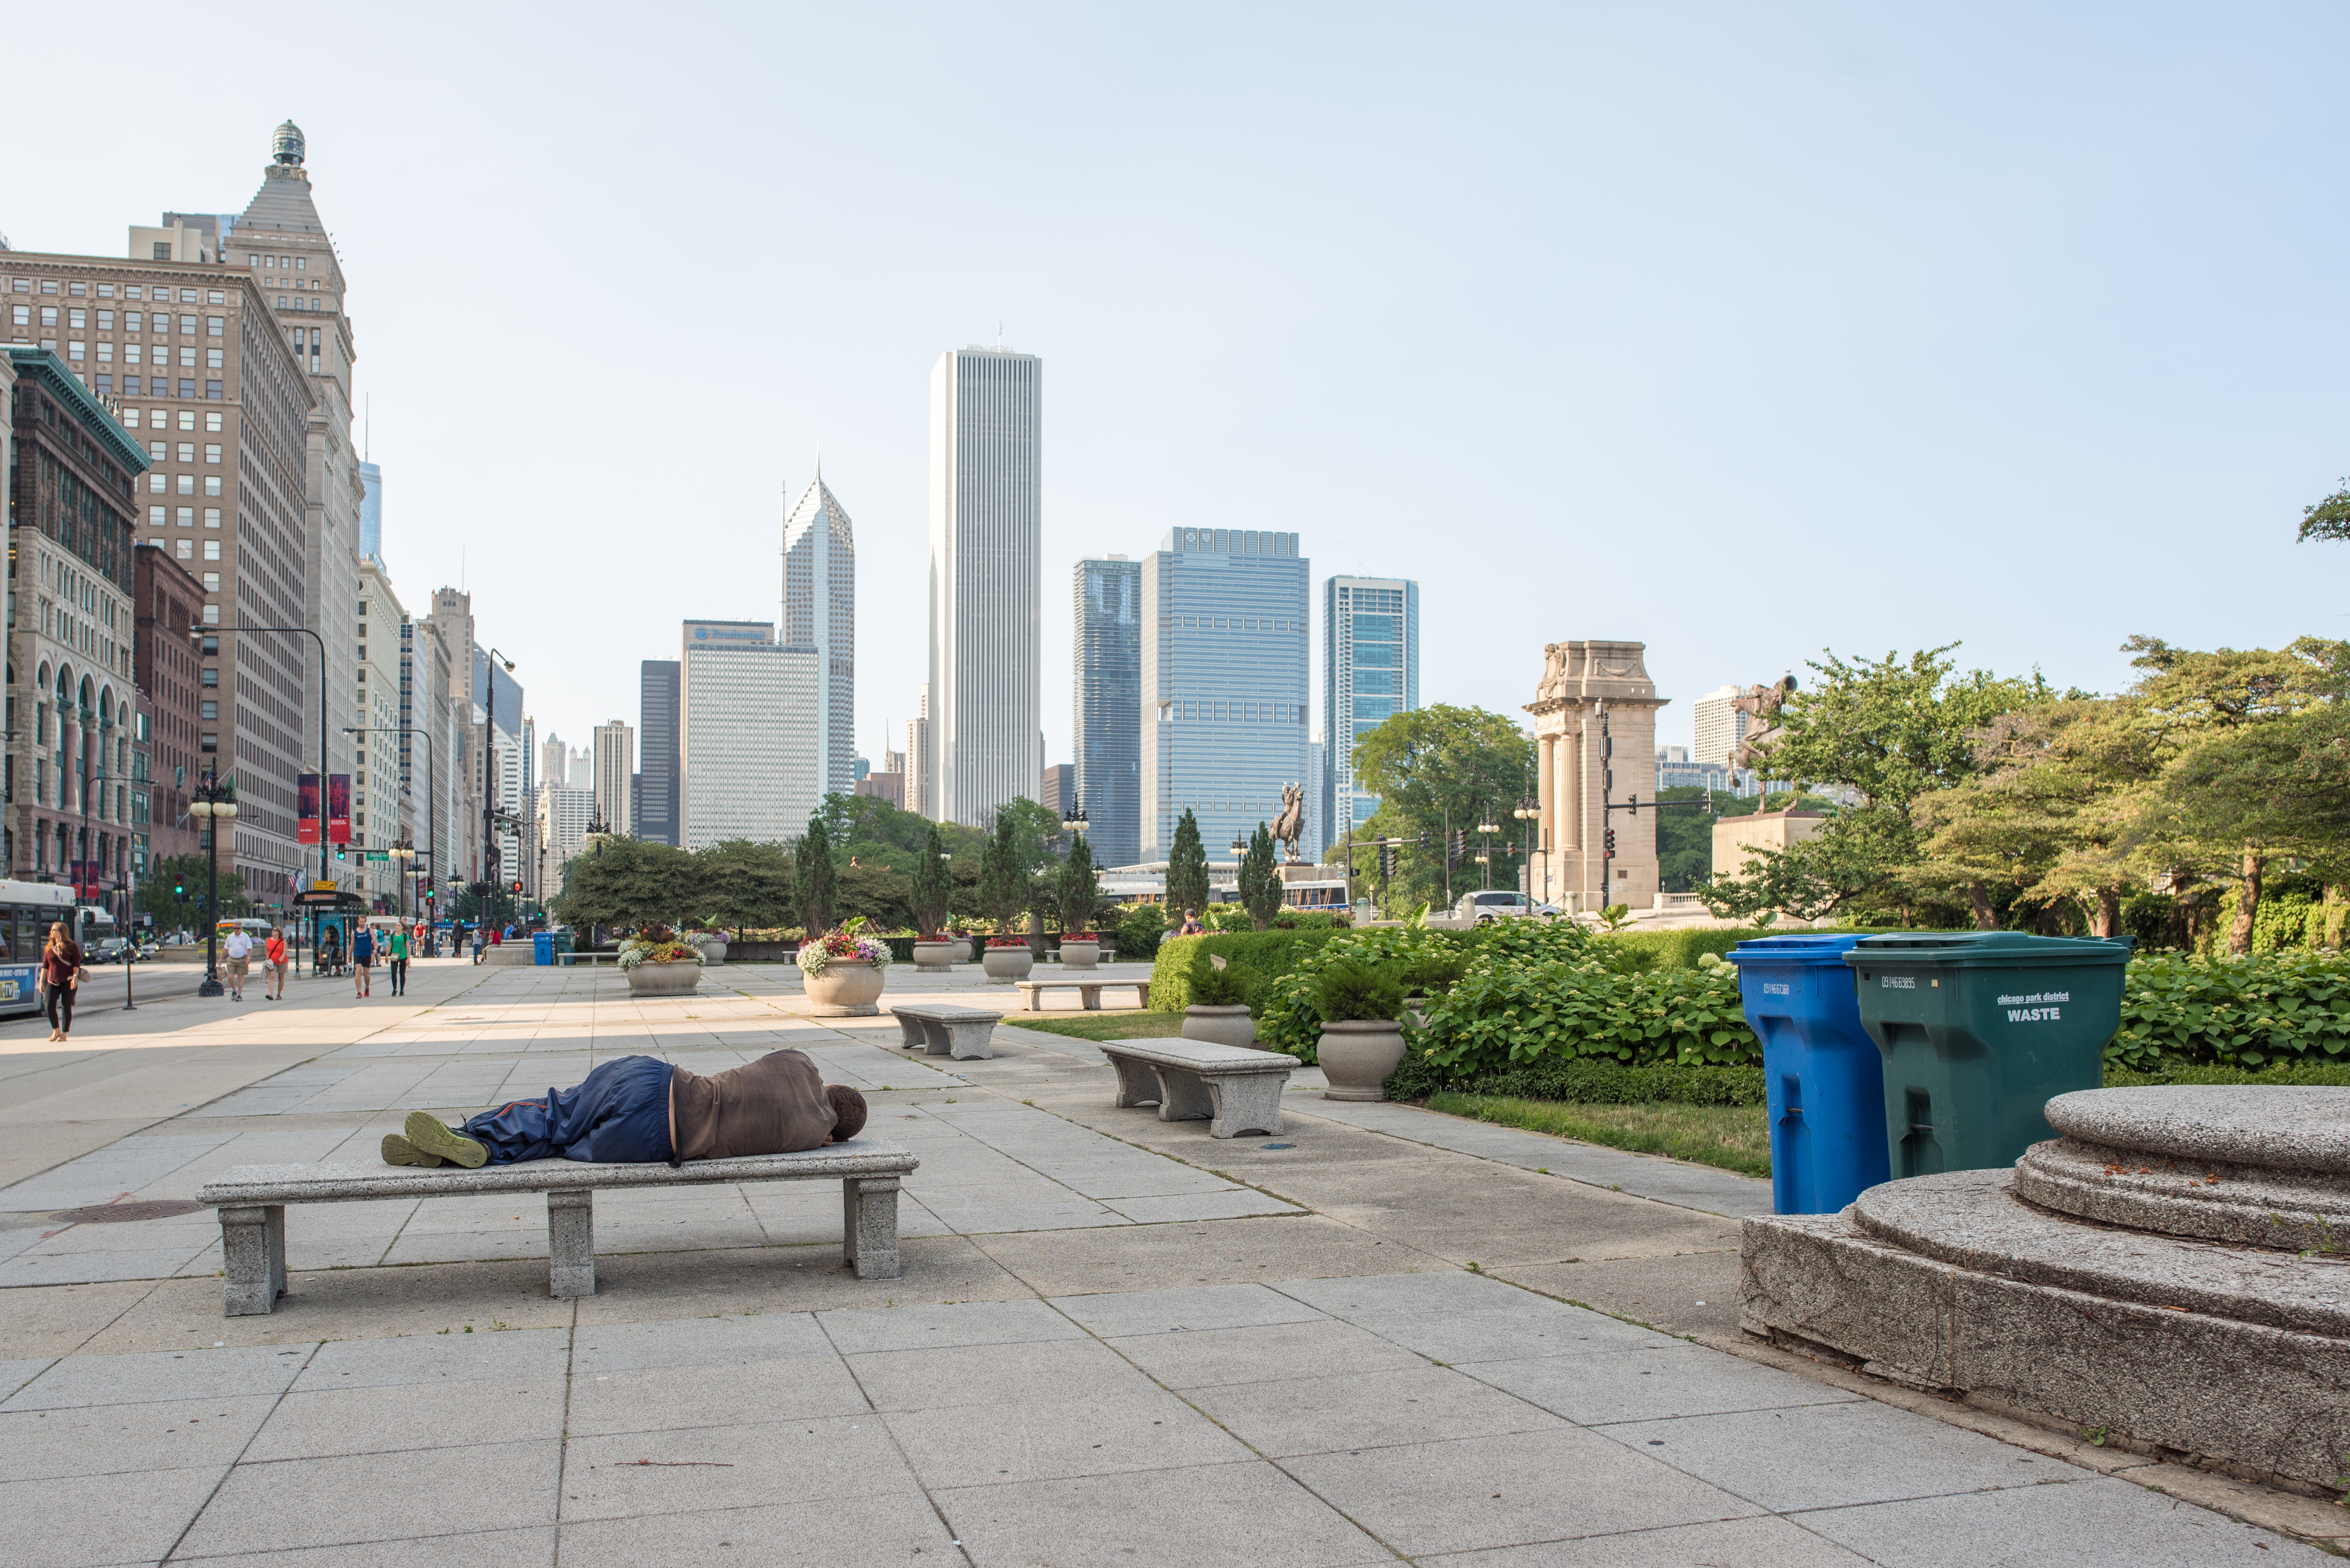 A bench in a Chicago park with buildings in the background.